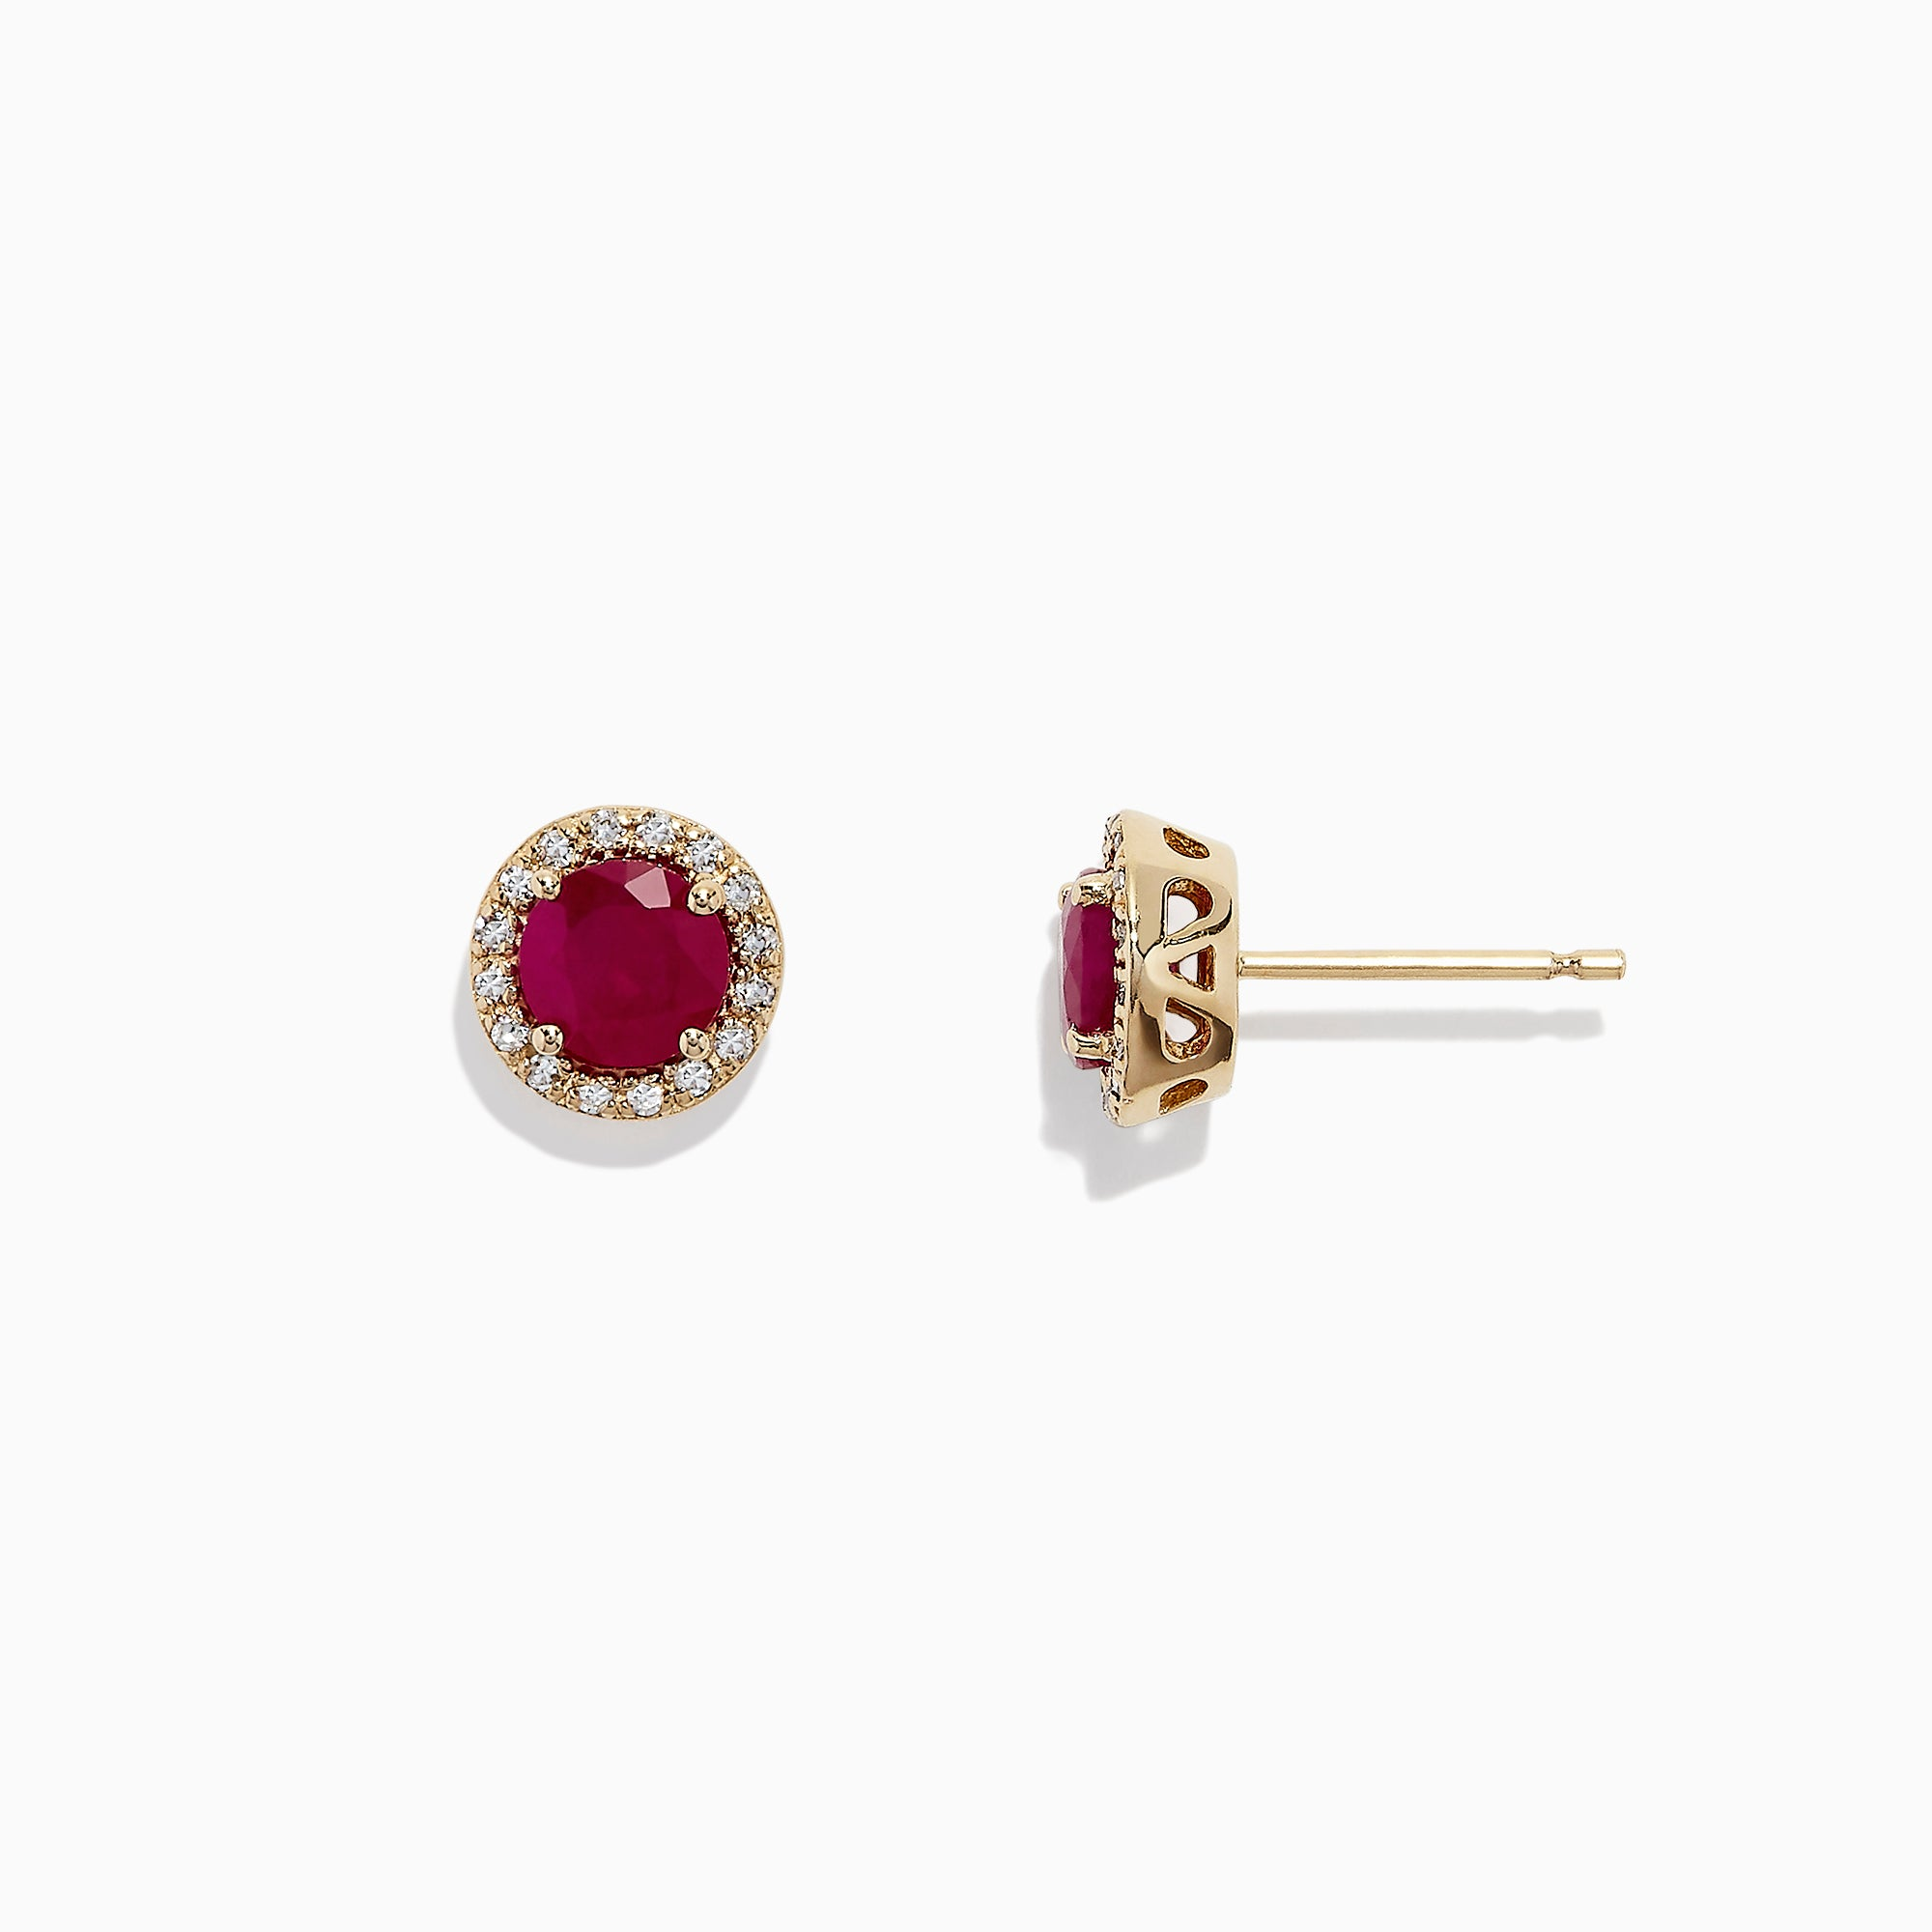 Effy Ruby Royale 14K Yellow Gold Ruby and Diamond Stud Earrings, 1.27 TCW